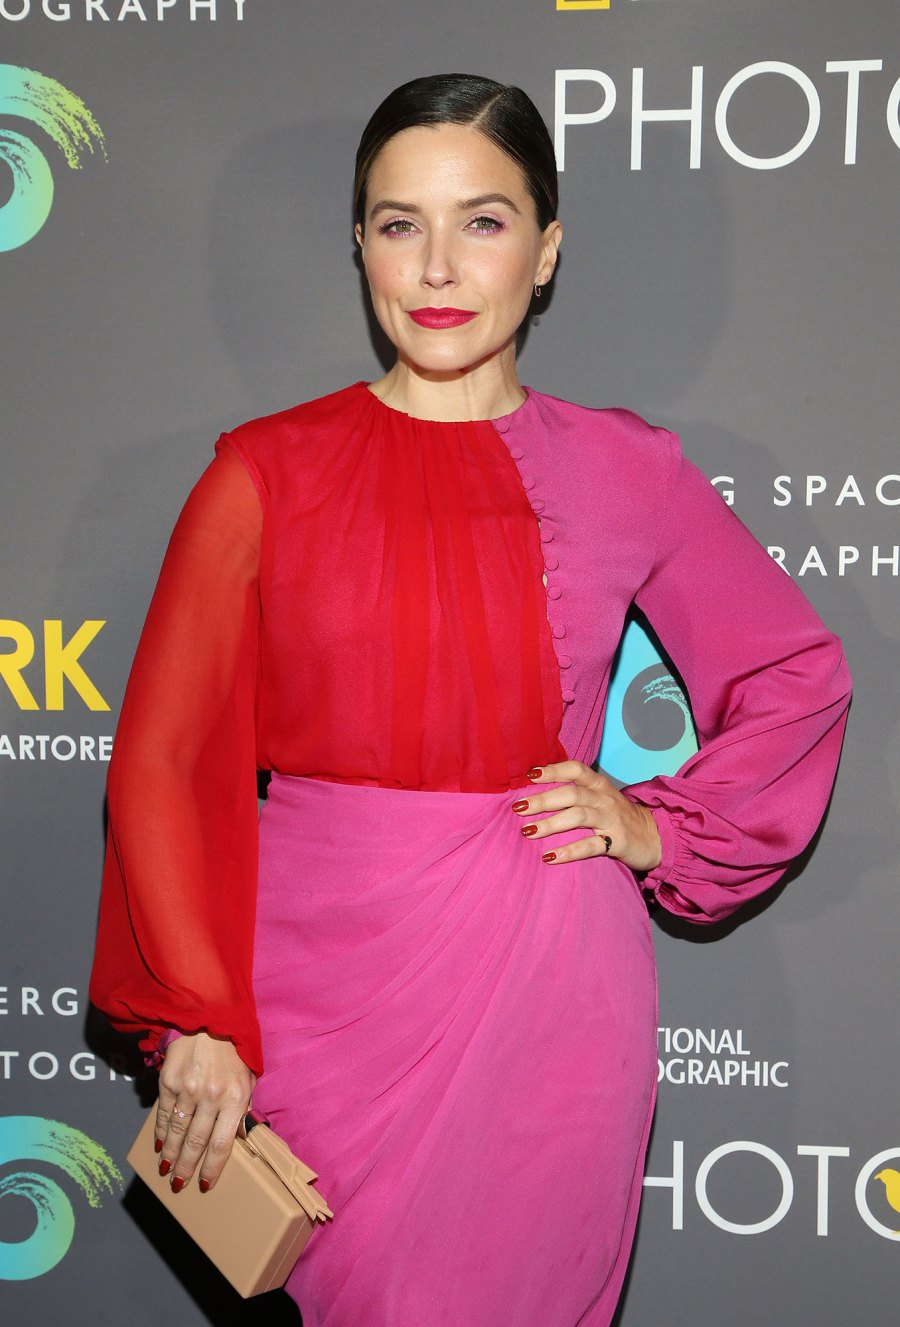 Sophia Bush Best Quotes About Love Marriage Ahead Grant Engagement Pink Dress